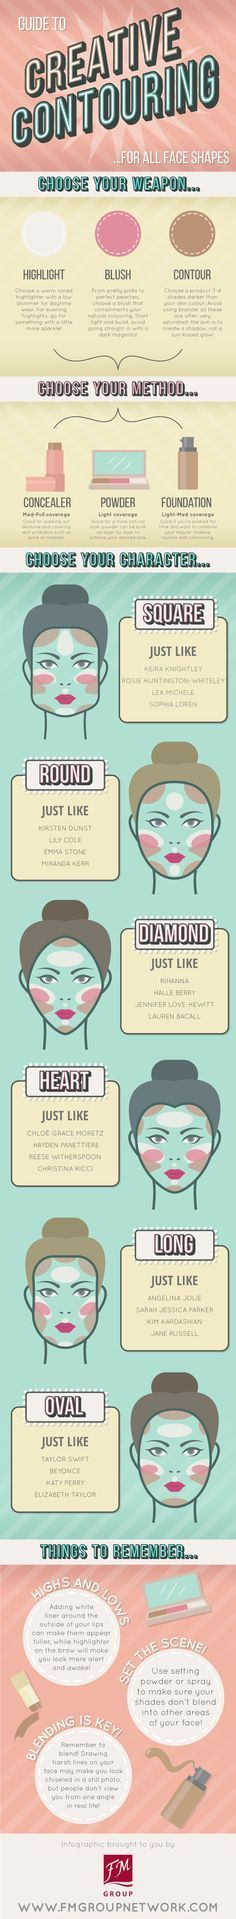 Guide to contouring based on face shape--oval, round, heart, diamond, square and long .